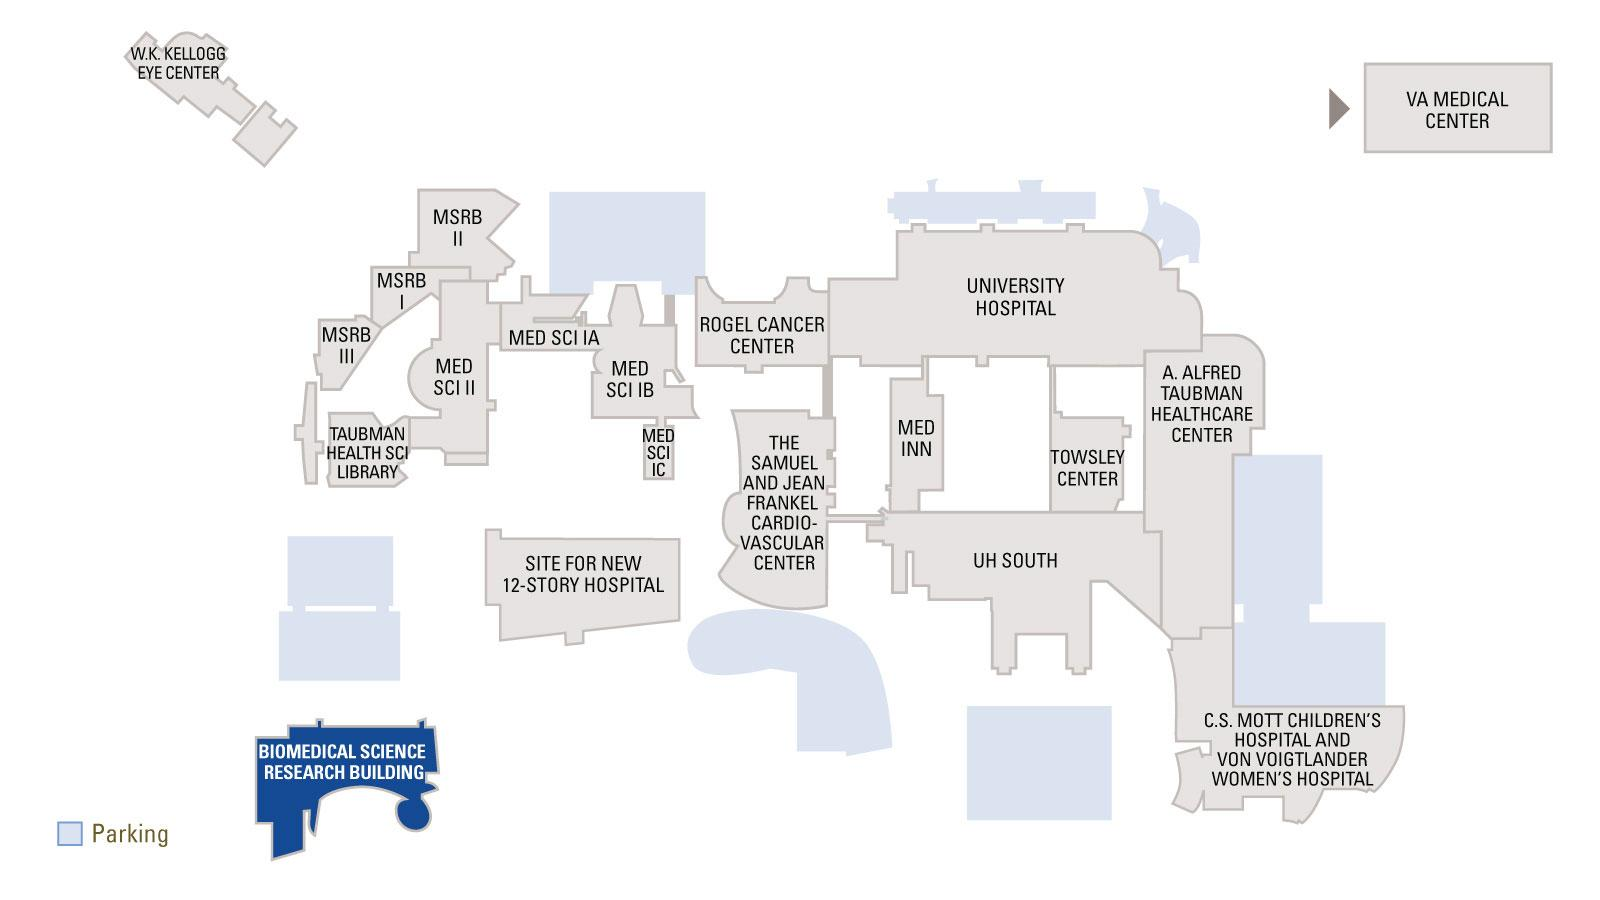 Map overview of Medical Campus with Biomedical Science Research Building highlighted in blue